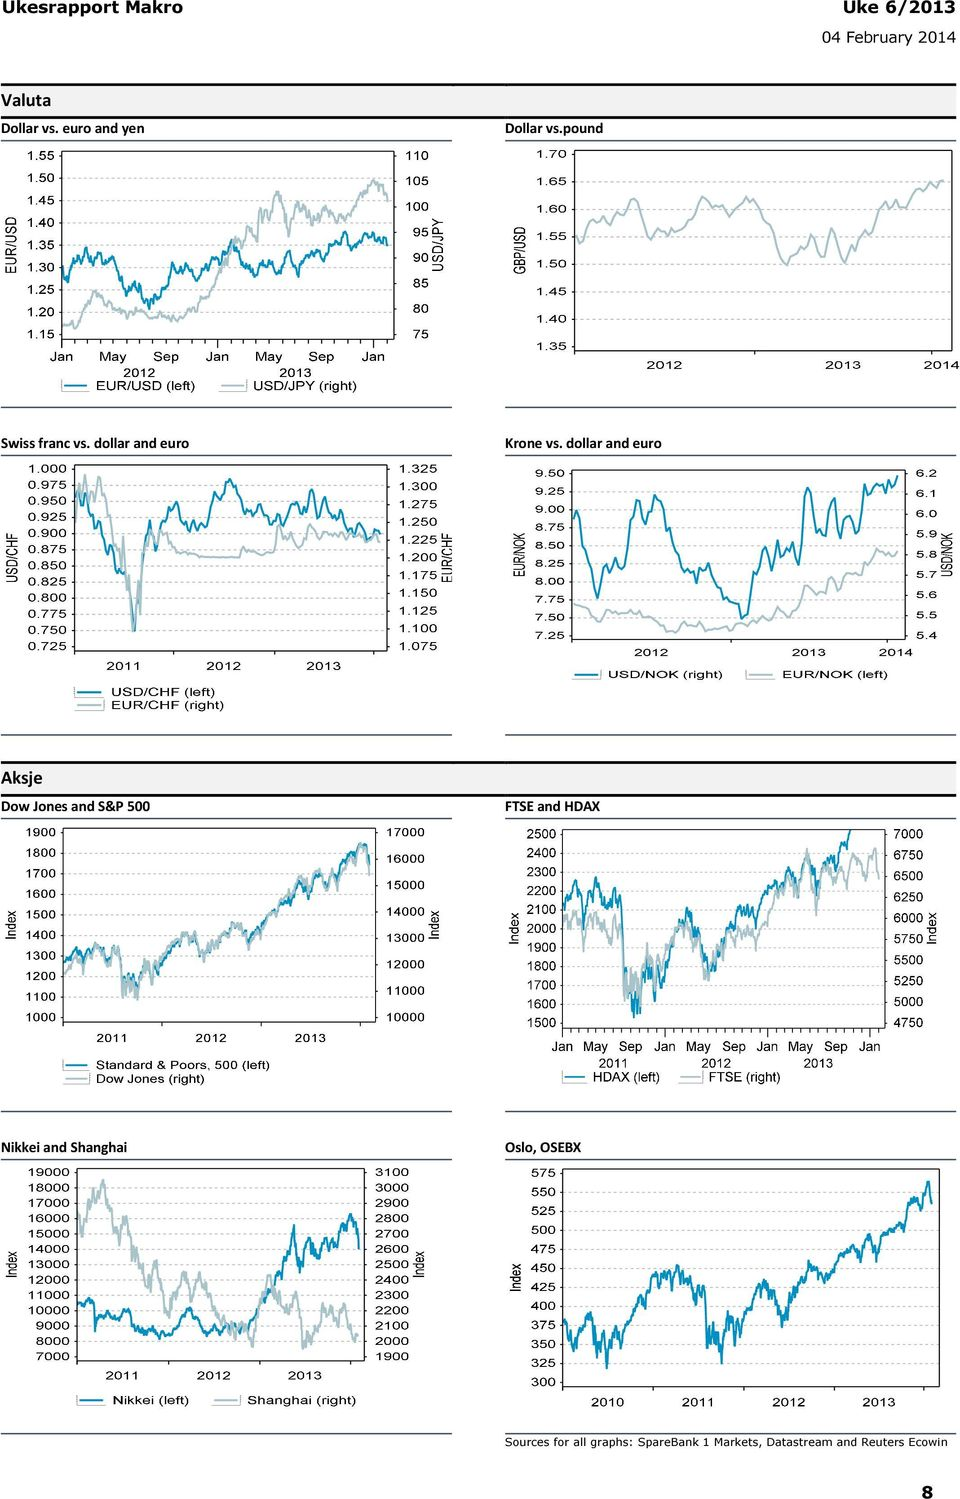 dollar and euro Aksje Dow Jones and S&P 500 FTSE and HDAX